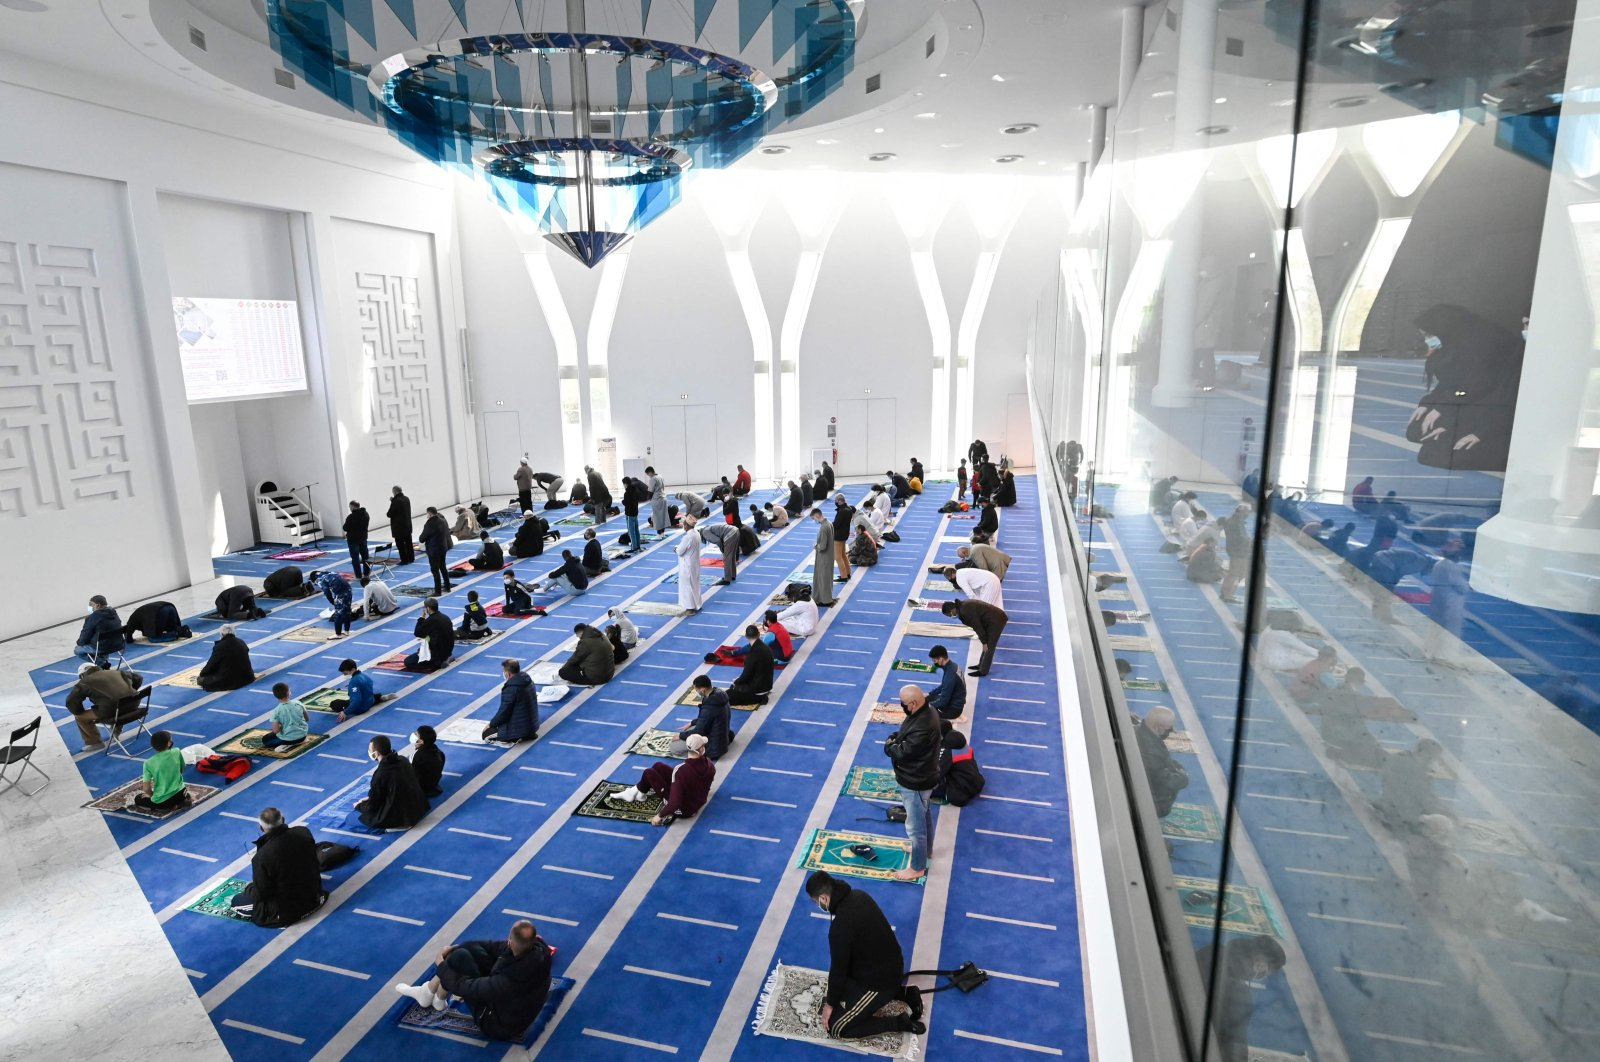 Muslim worshippers pray on the first day of the holy month of Ramadan at the al-Nour mosque in Mulhouse, eastern France, April 13, 2021. (AFP Photo)